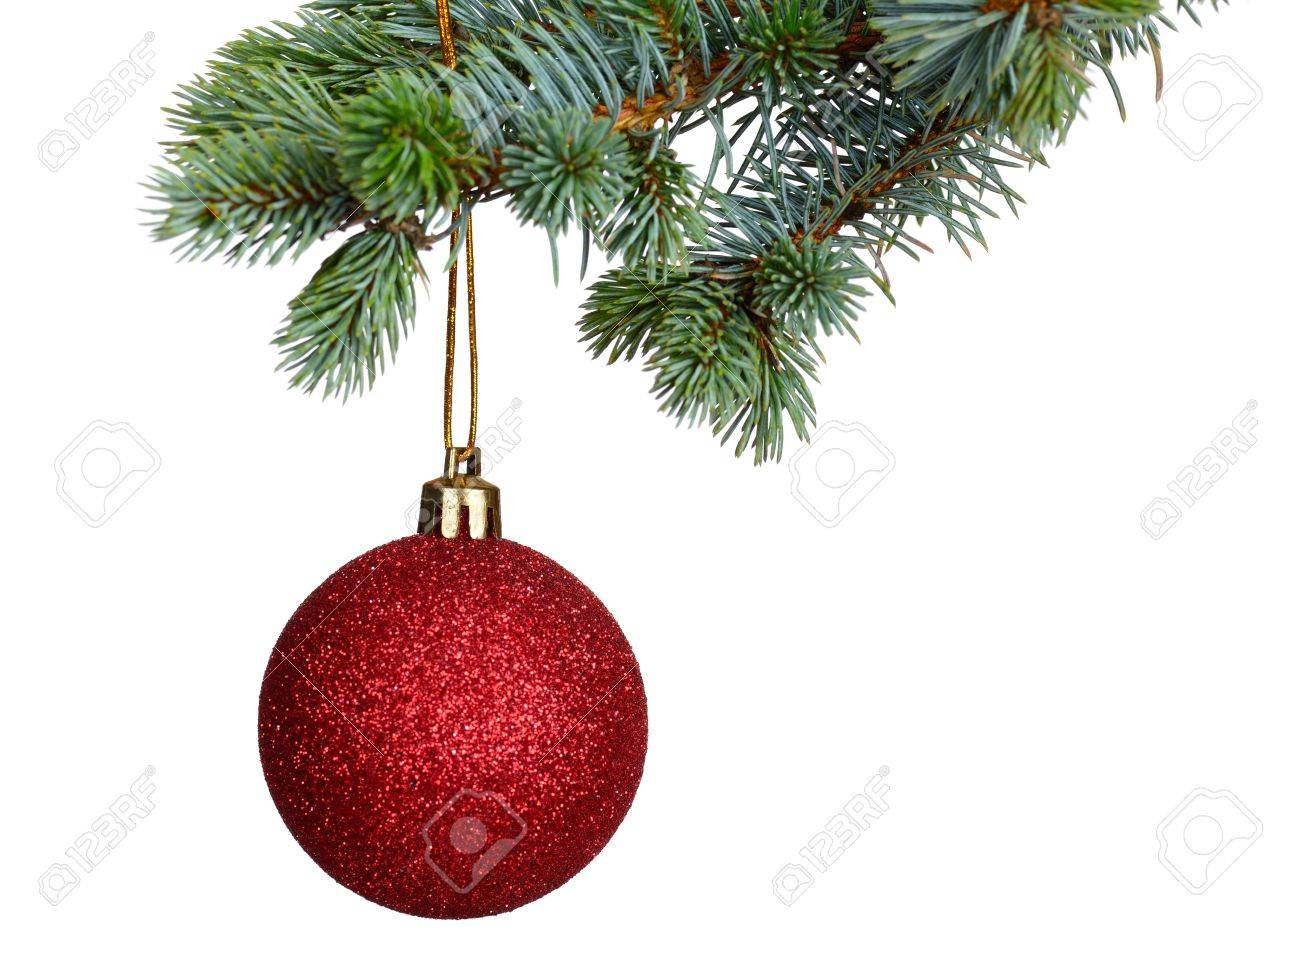 Merry Christmas and Happy New Year Stock Photo - 16007675